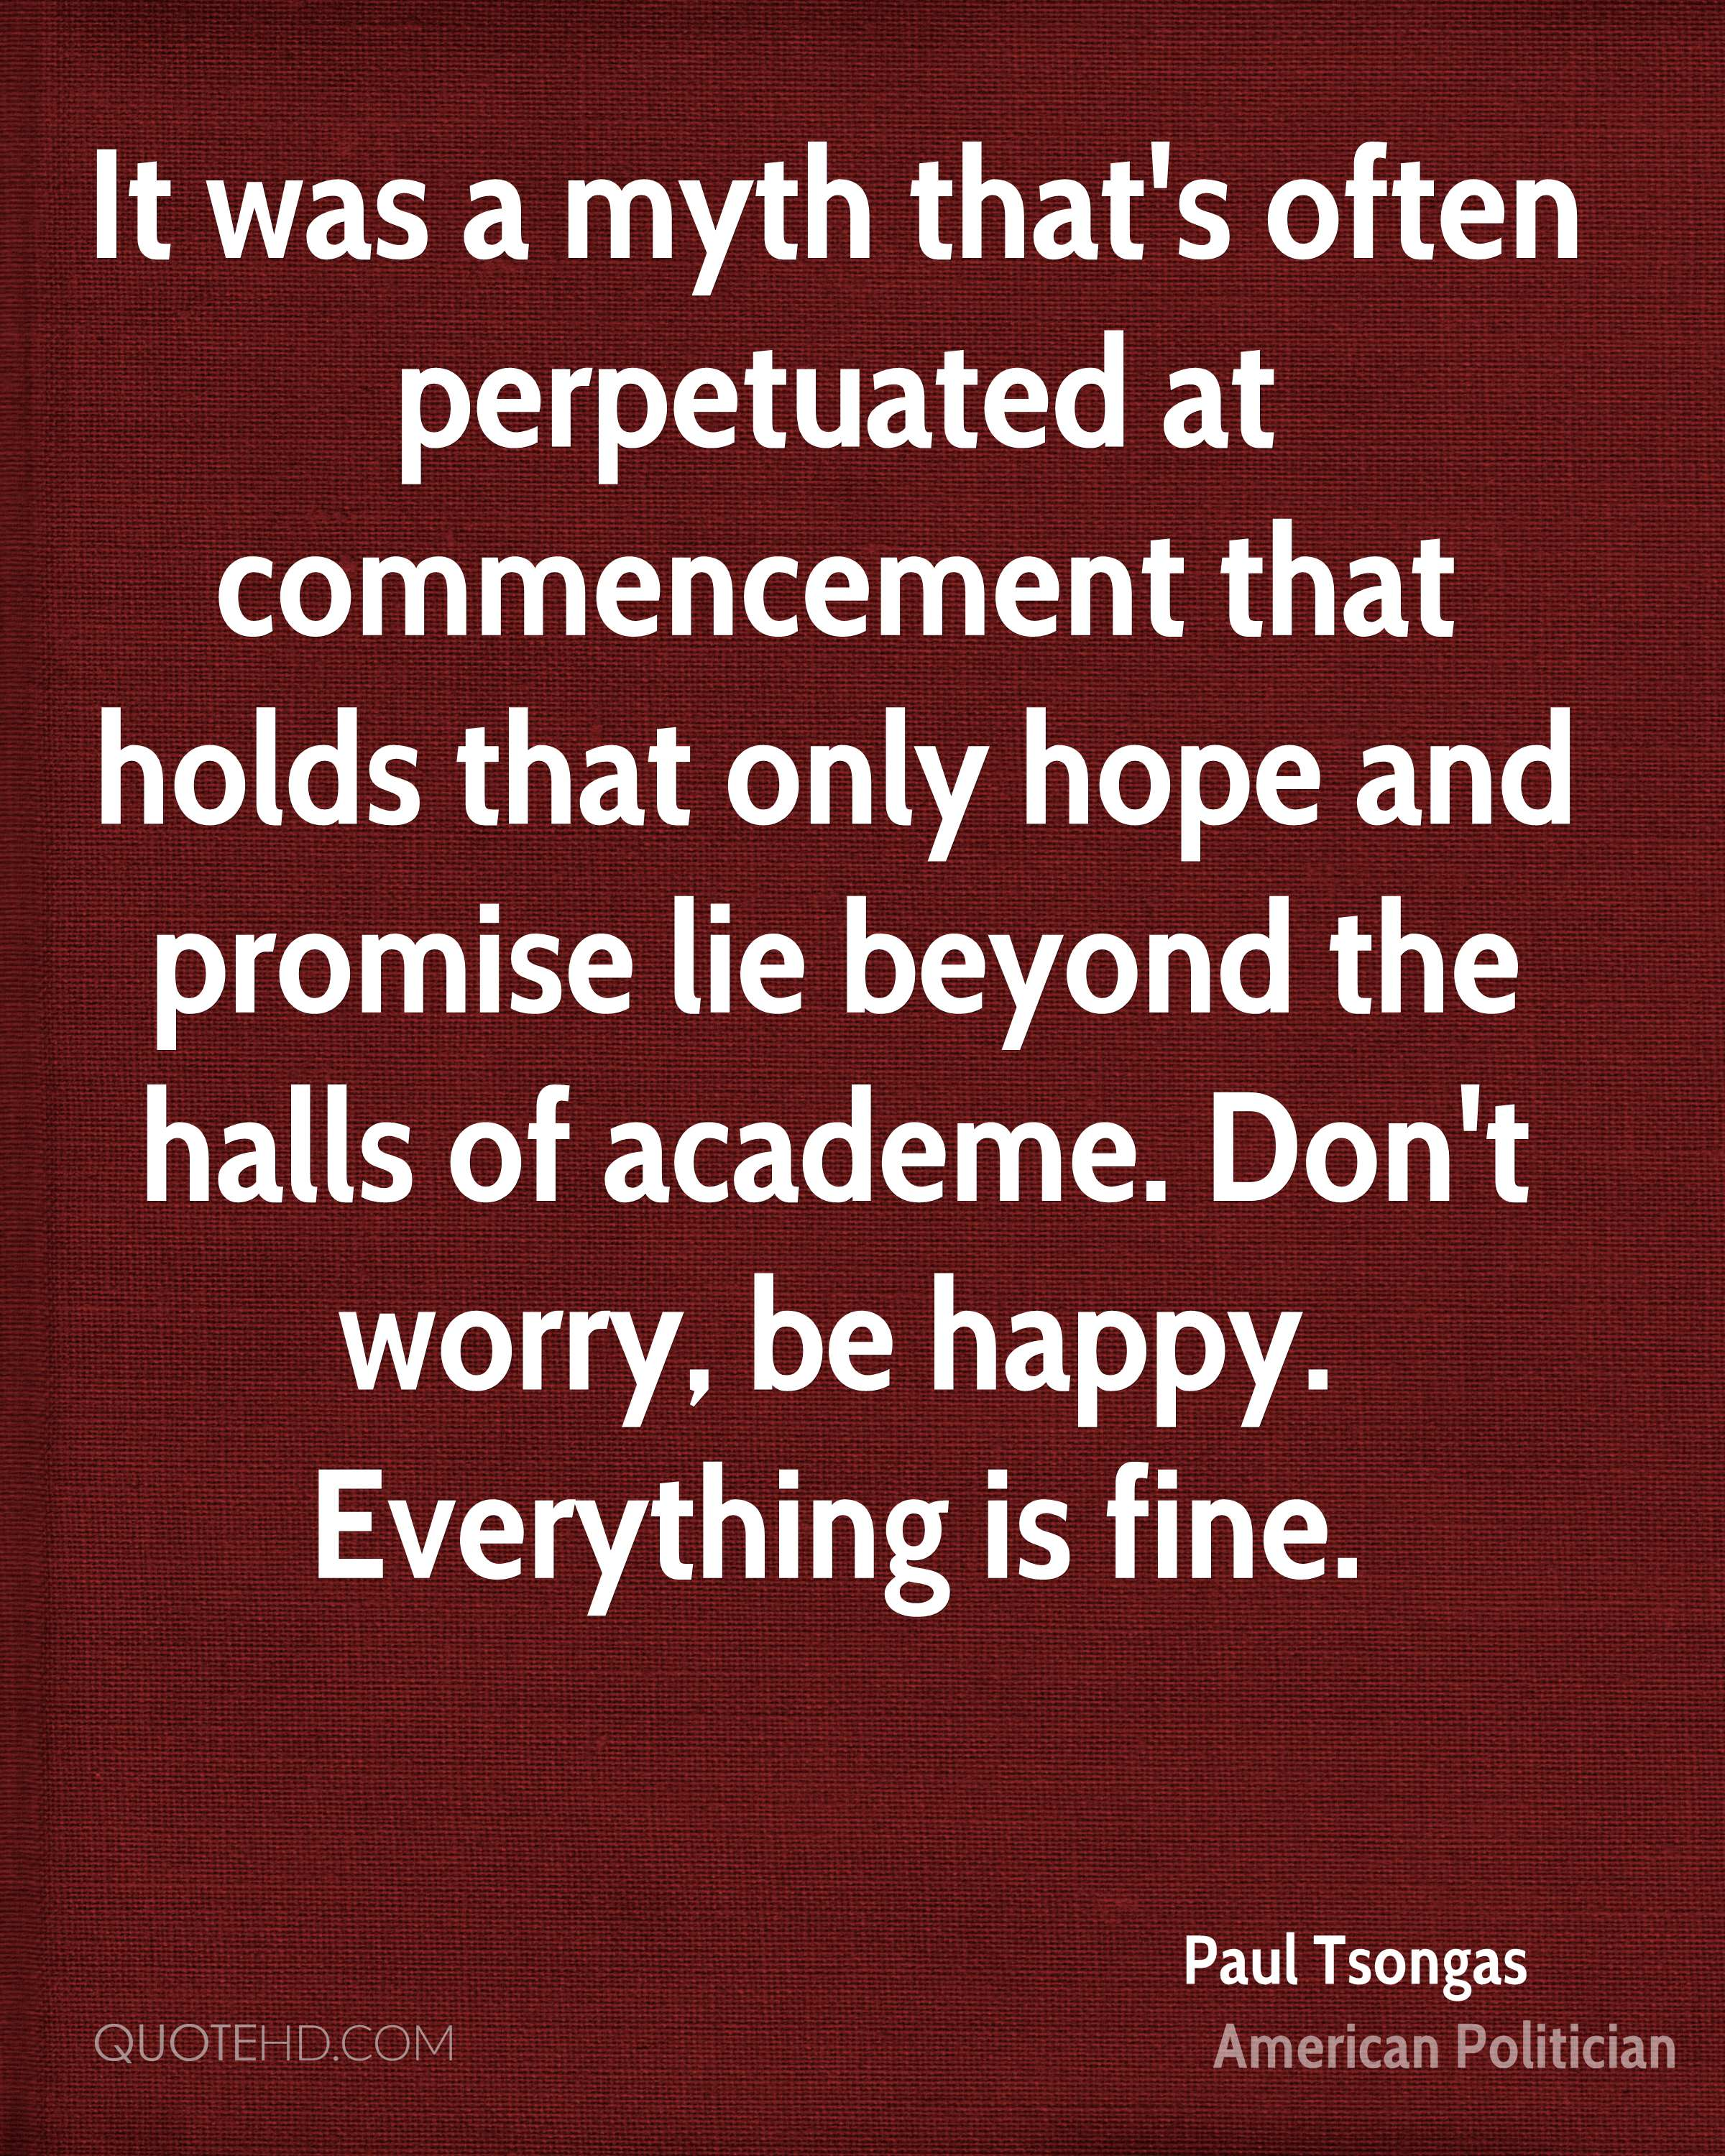 It was a myth that's often perpetuated at commencement that holds that only hope and promise lie beyond the halls of academe. Don't worry, be happy. Everything is fine.